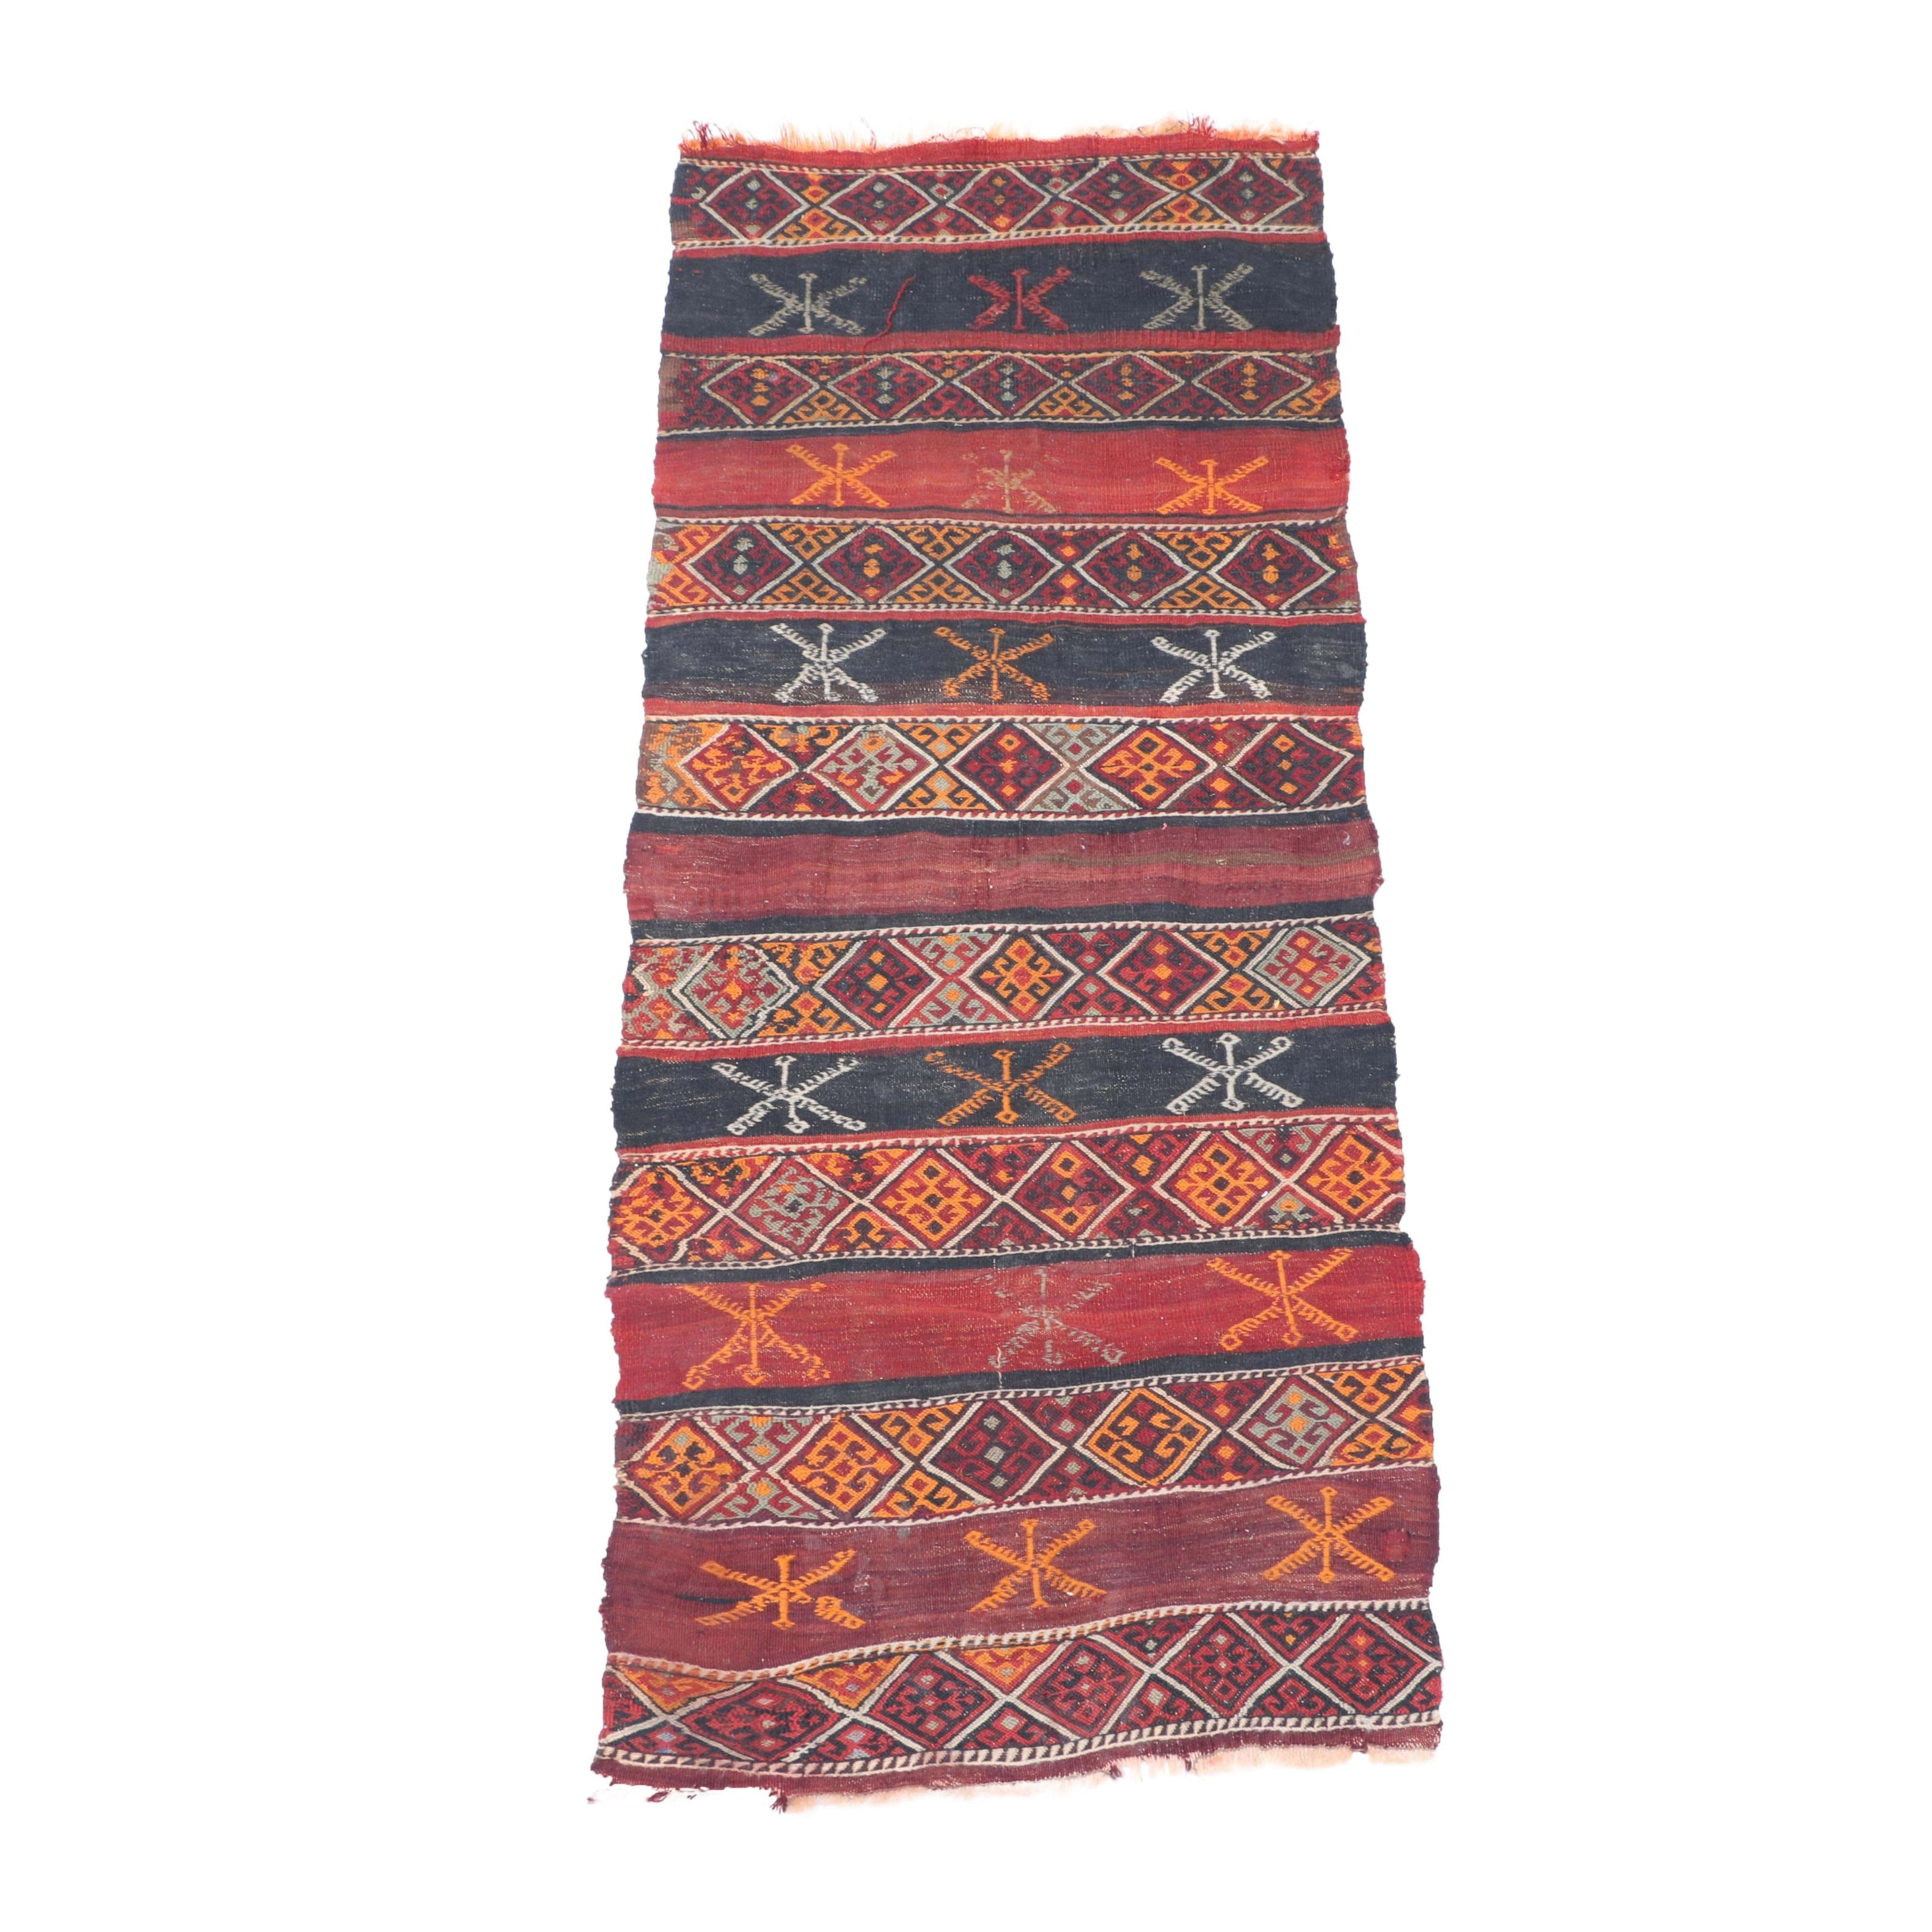 Handwoven and Embroidered Kurdish Jaff Carpet Runner